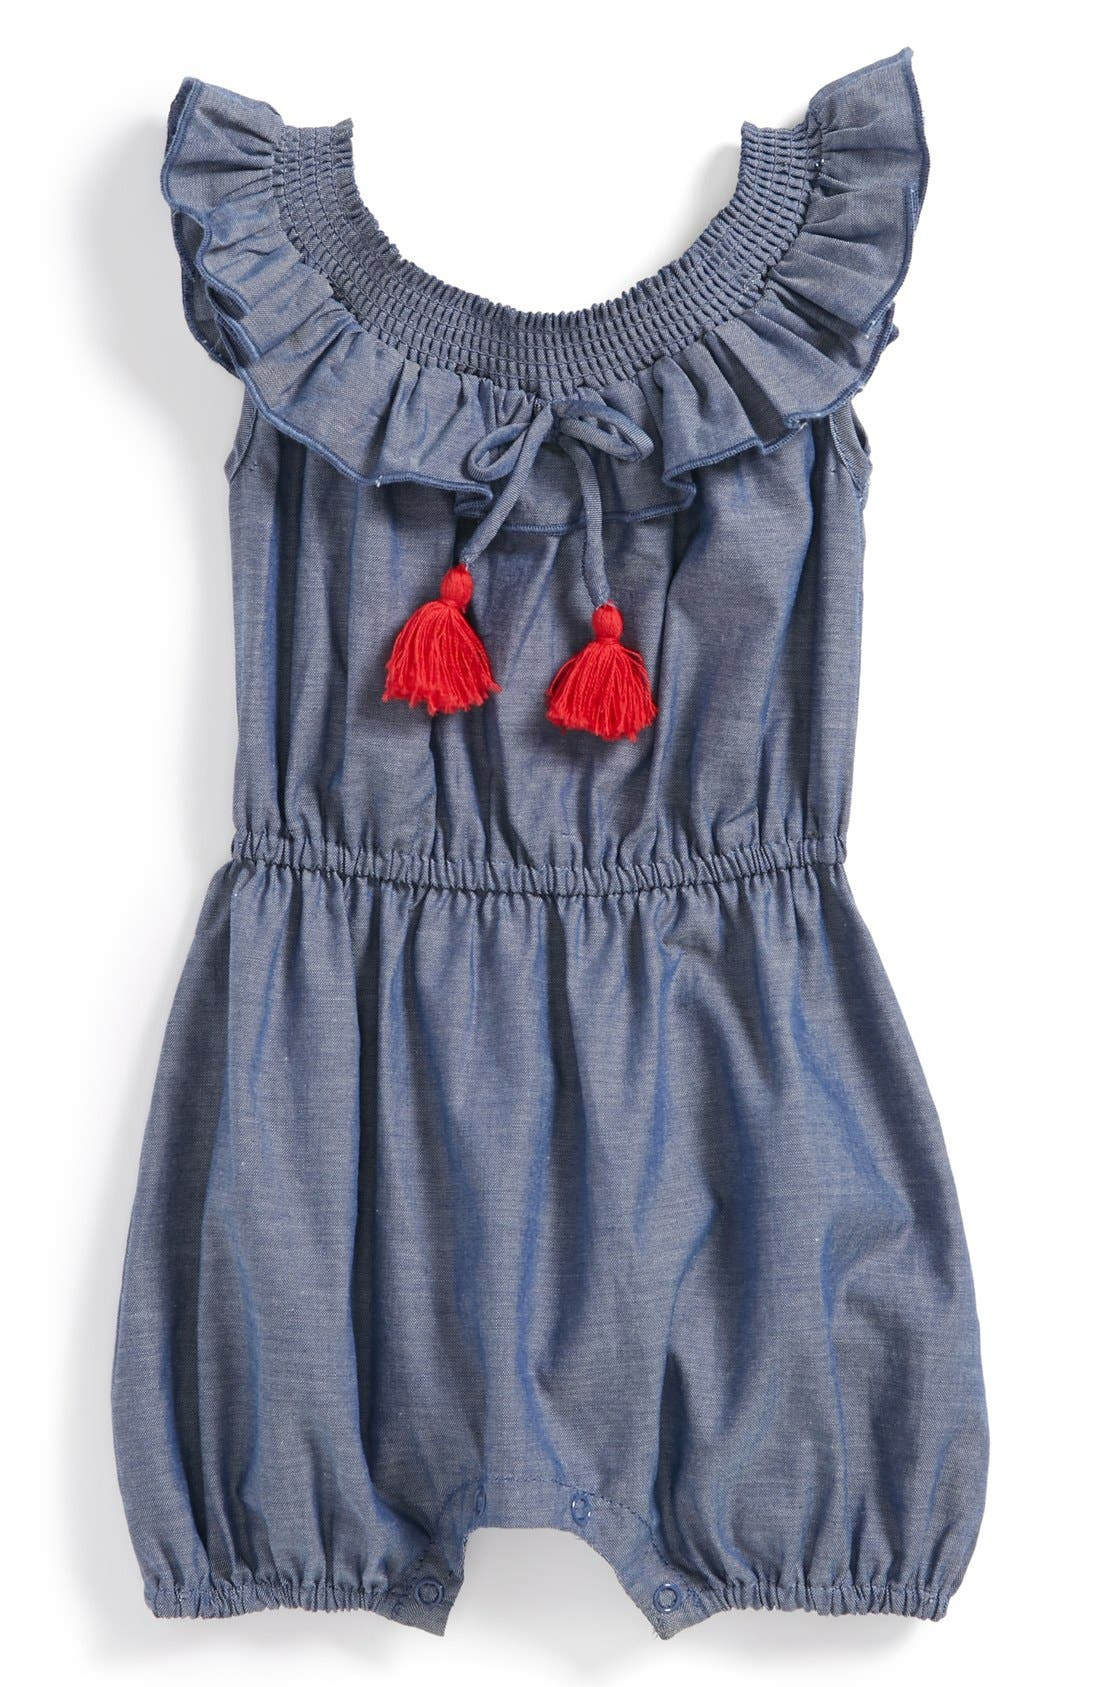 Alternate Image 1 Selected - egg by susan lazar Chambray Romper (Baby Girls)